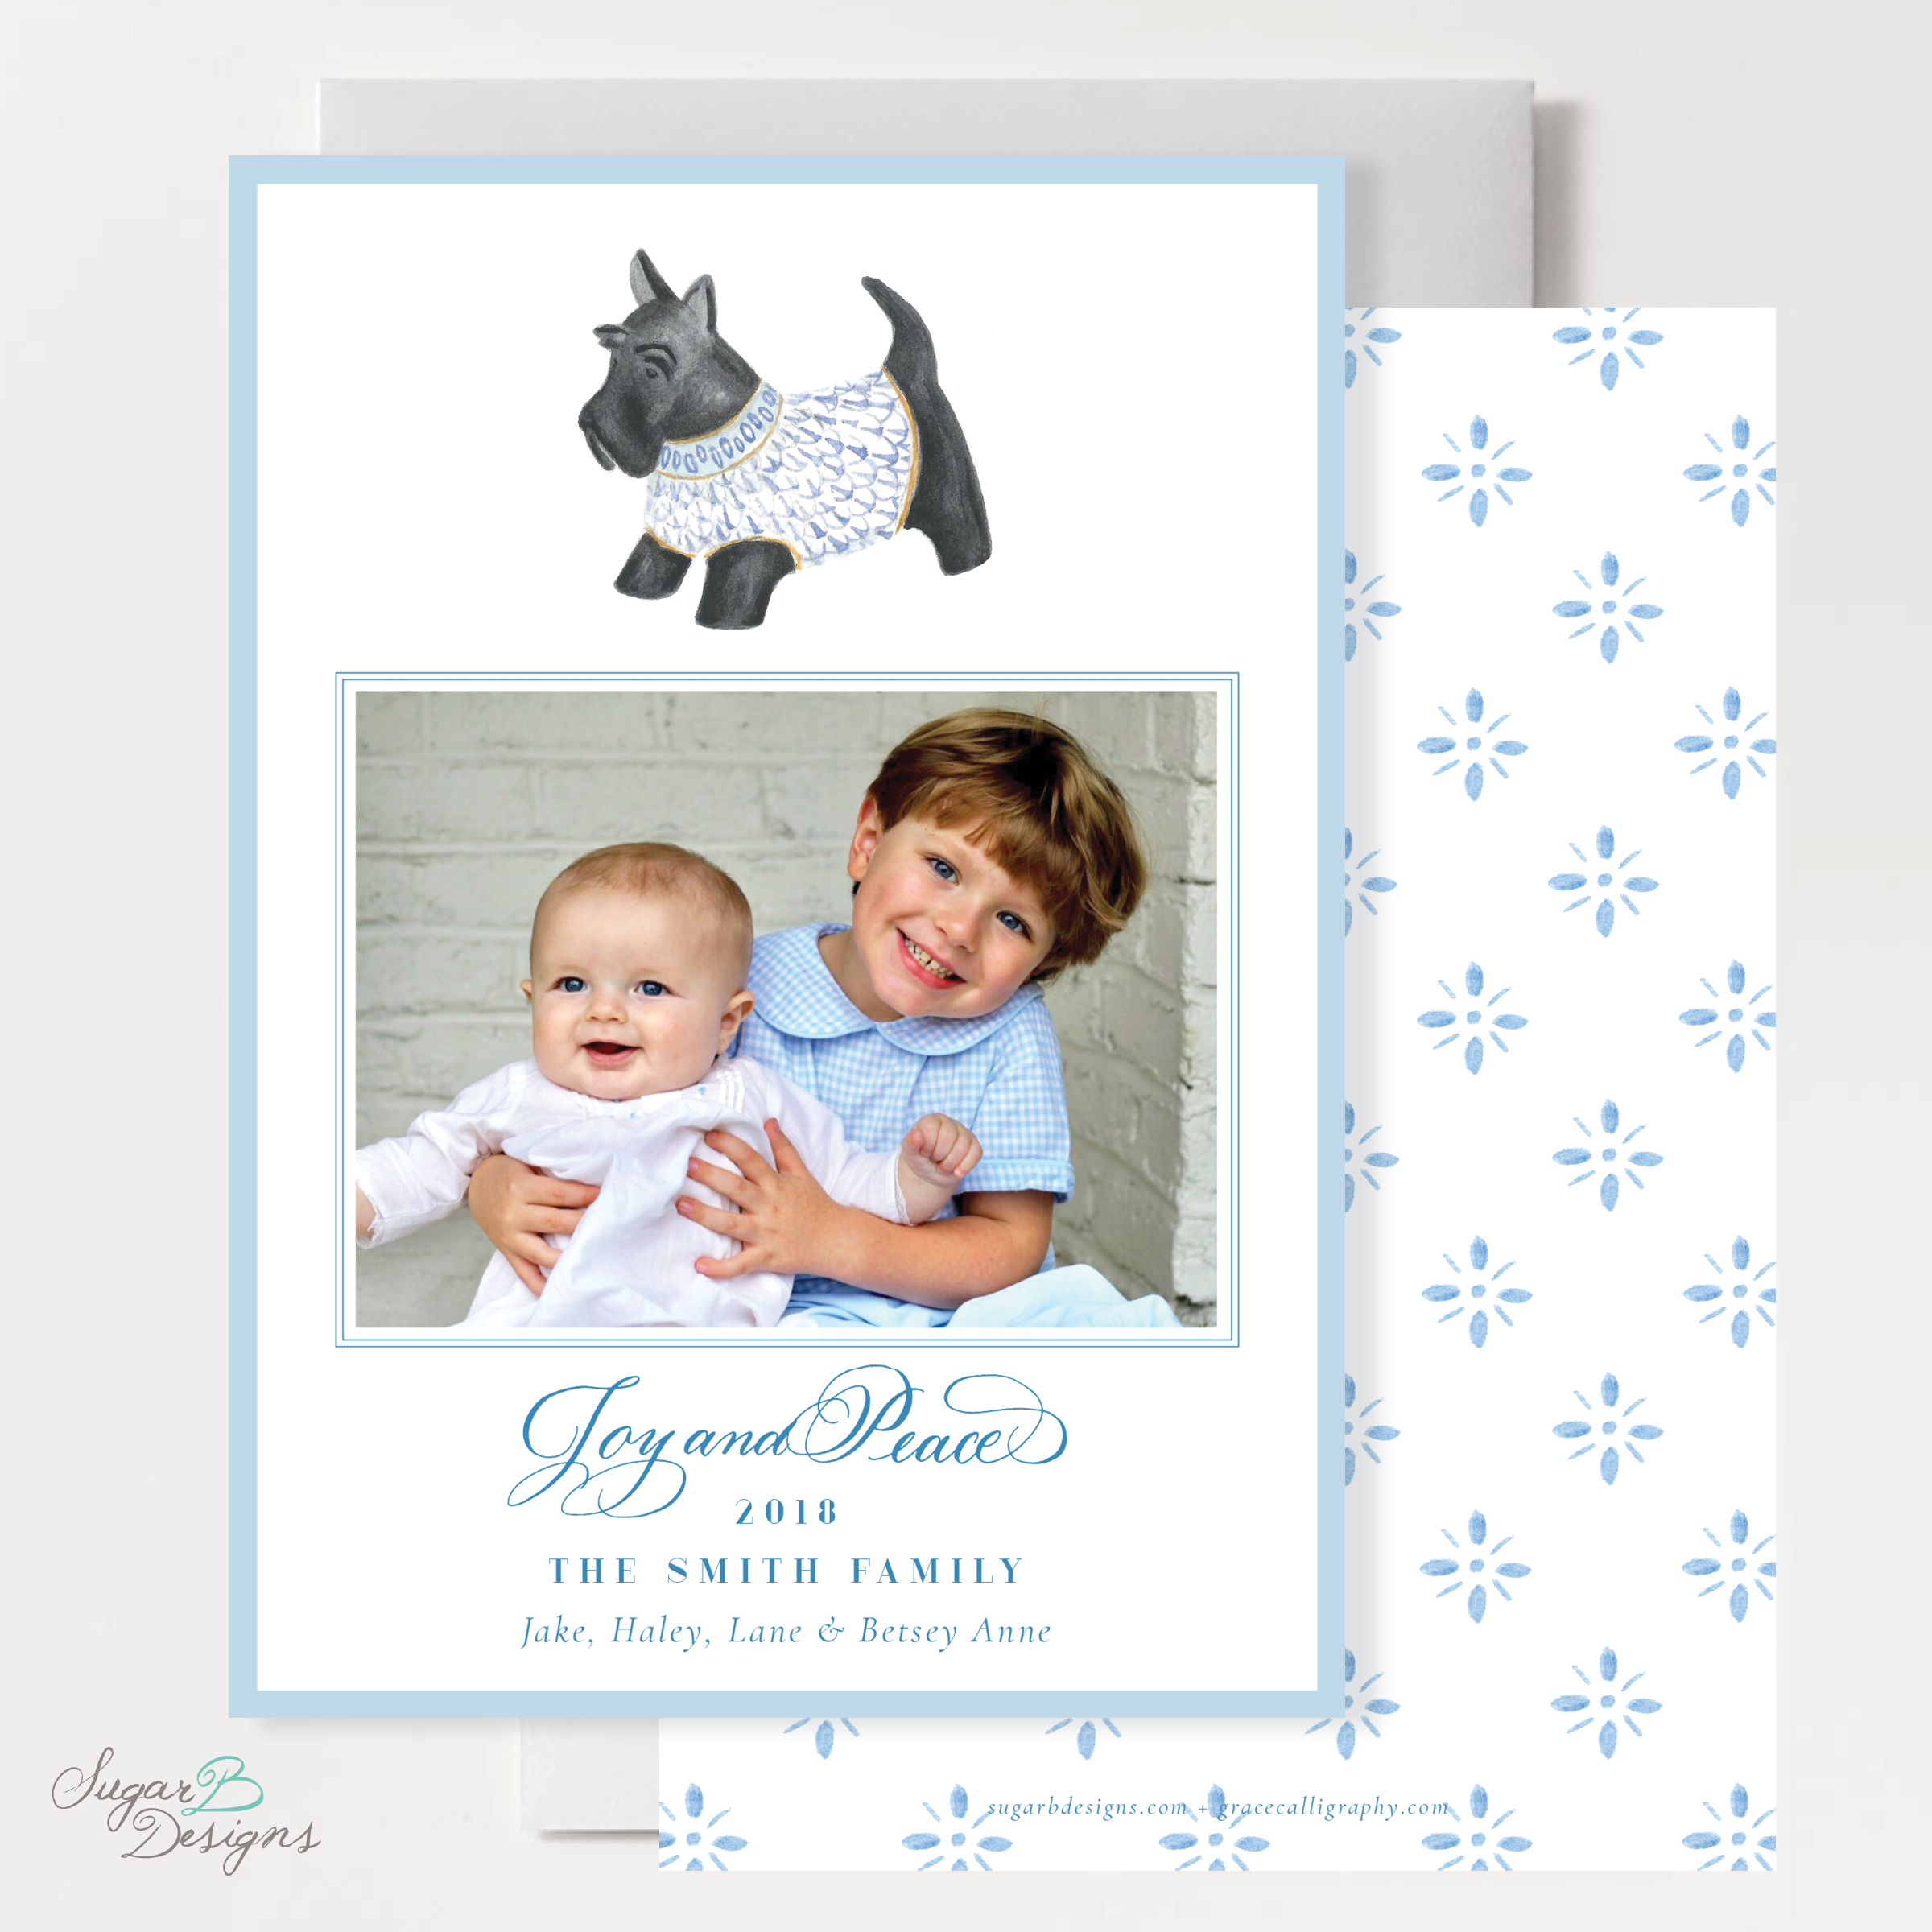 Herend Inspired Scottie Dog Vertical Christmas Card front + back by Sugar B Designs.png